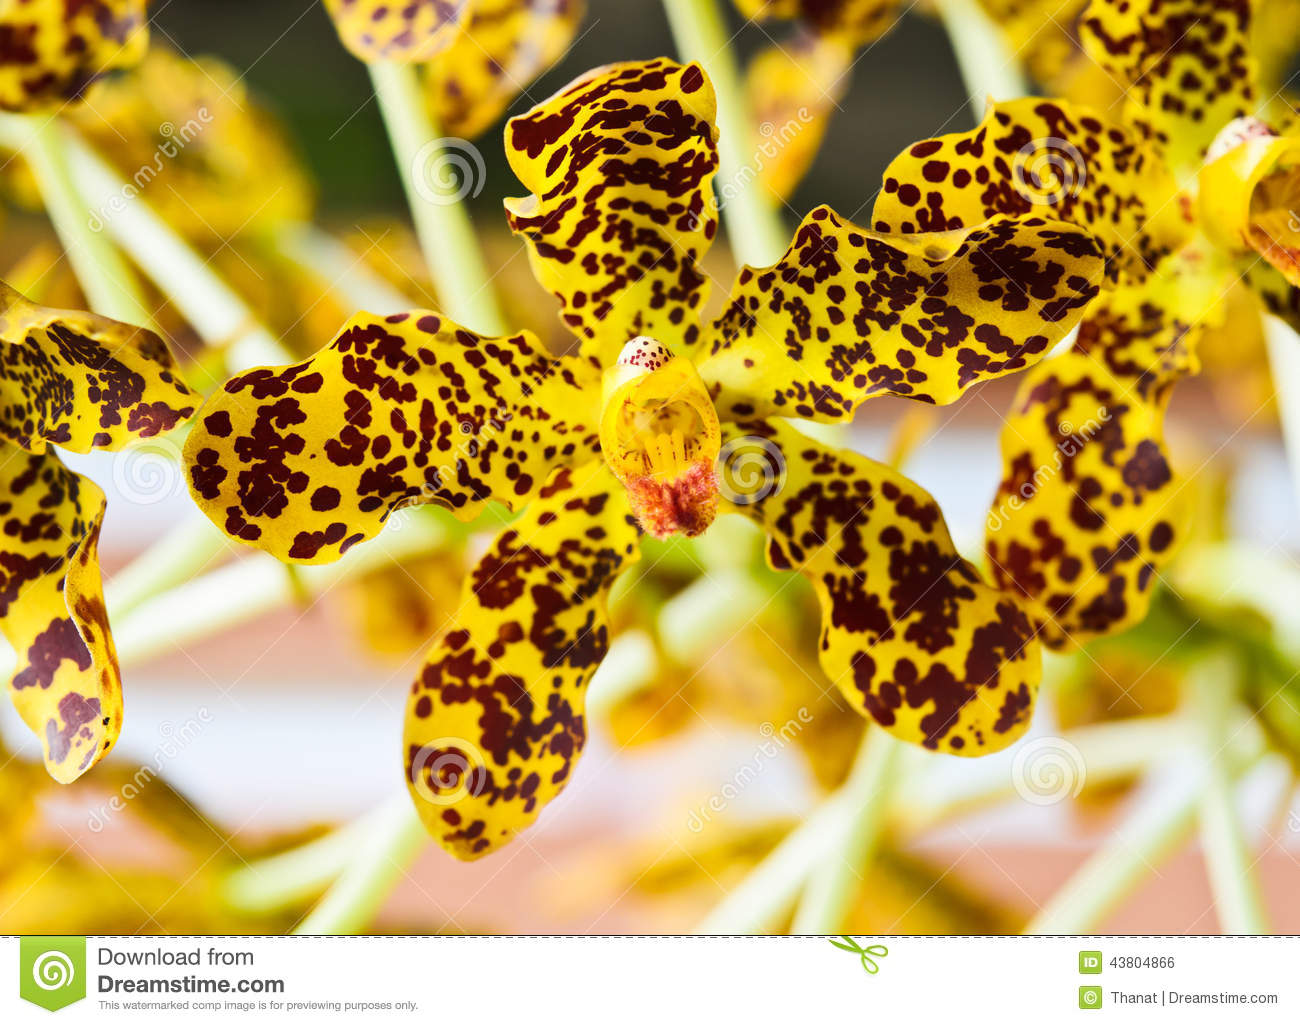 Leopard Orchid clipart #19, Download drawings